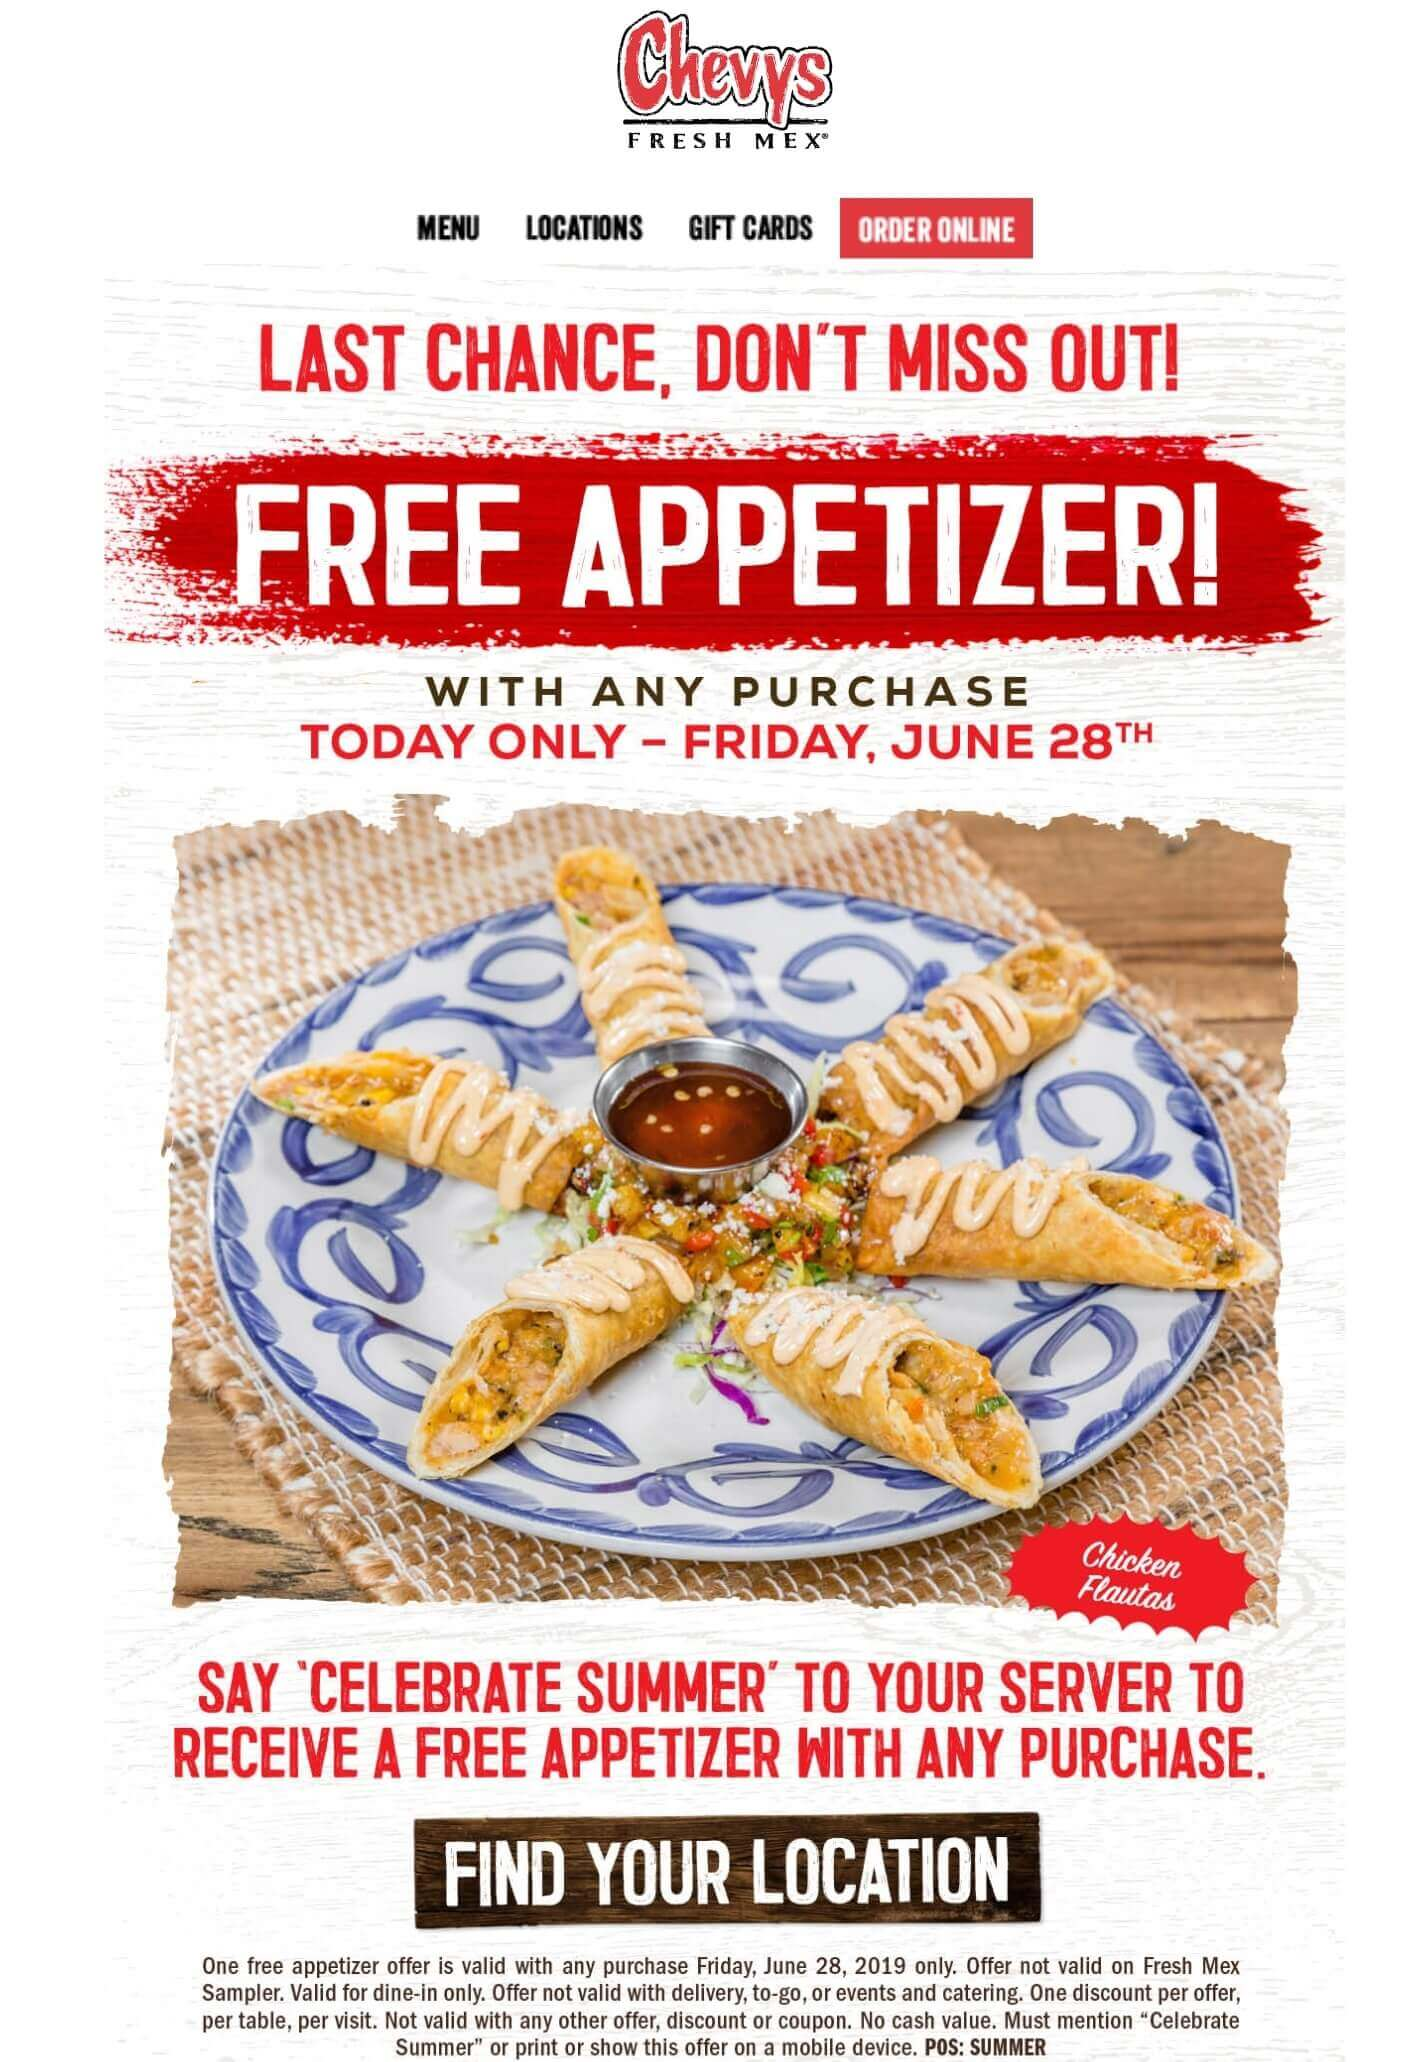 Chevys Fresh Mex Coupon July 2020 Free appetizer today at Chevys Fresh Mex